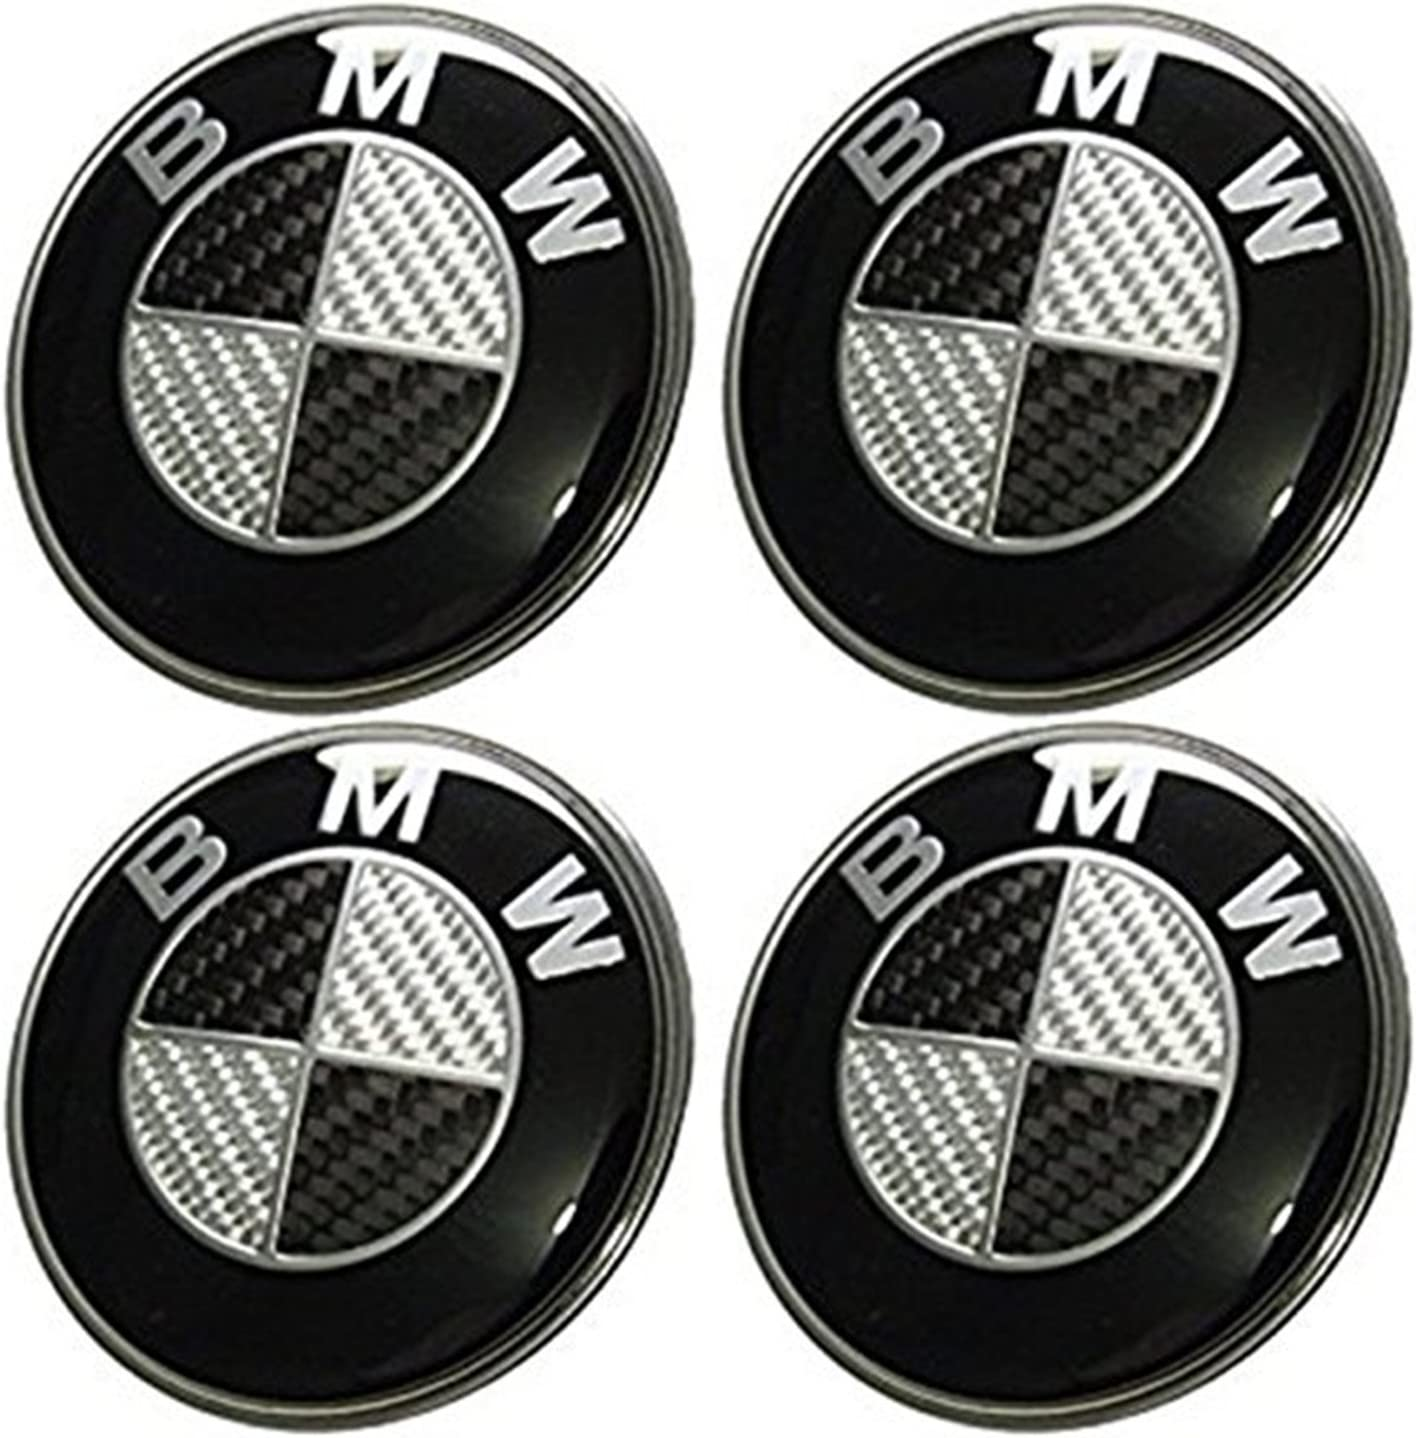 Black WHEEL CENTRE CAPS BLACK CARBON FIBRE 68MM SET OF FOUR Centre Caps Best Fit for BMW Wheels black